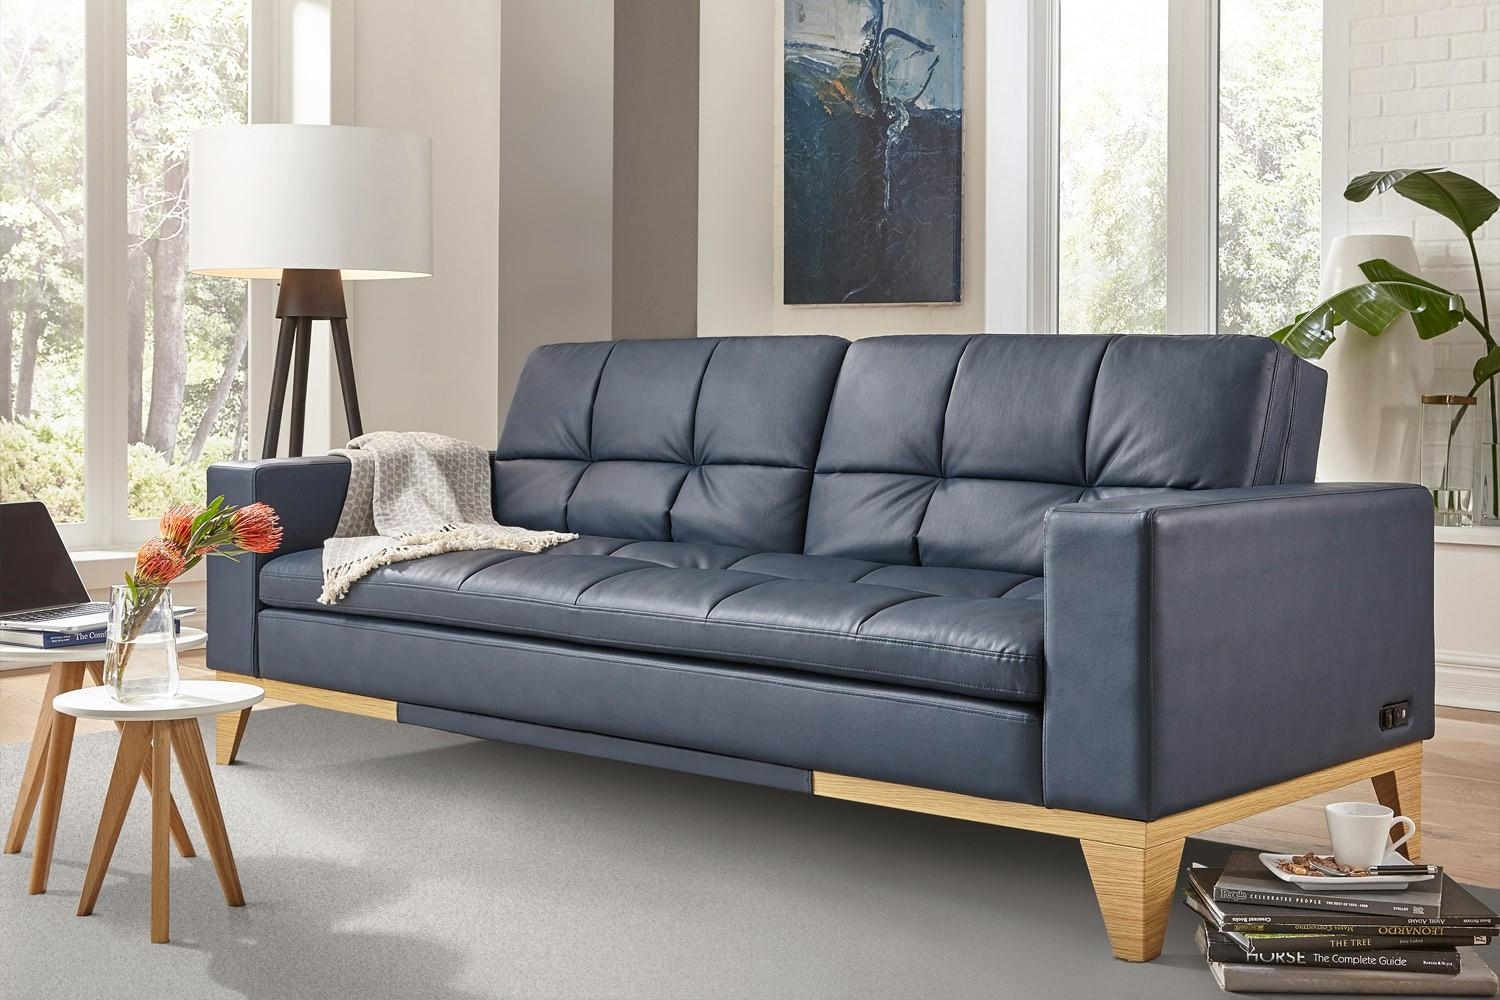 Convertible Sofa Bed | Relaxalounger Futon | The Futon Shop With Bonded Leather Sofas (Image 11 of 20)